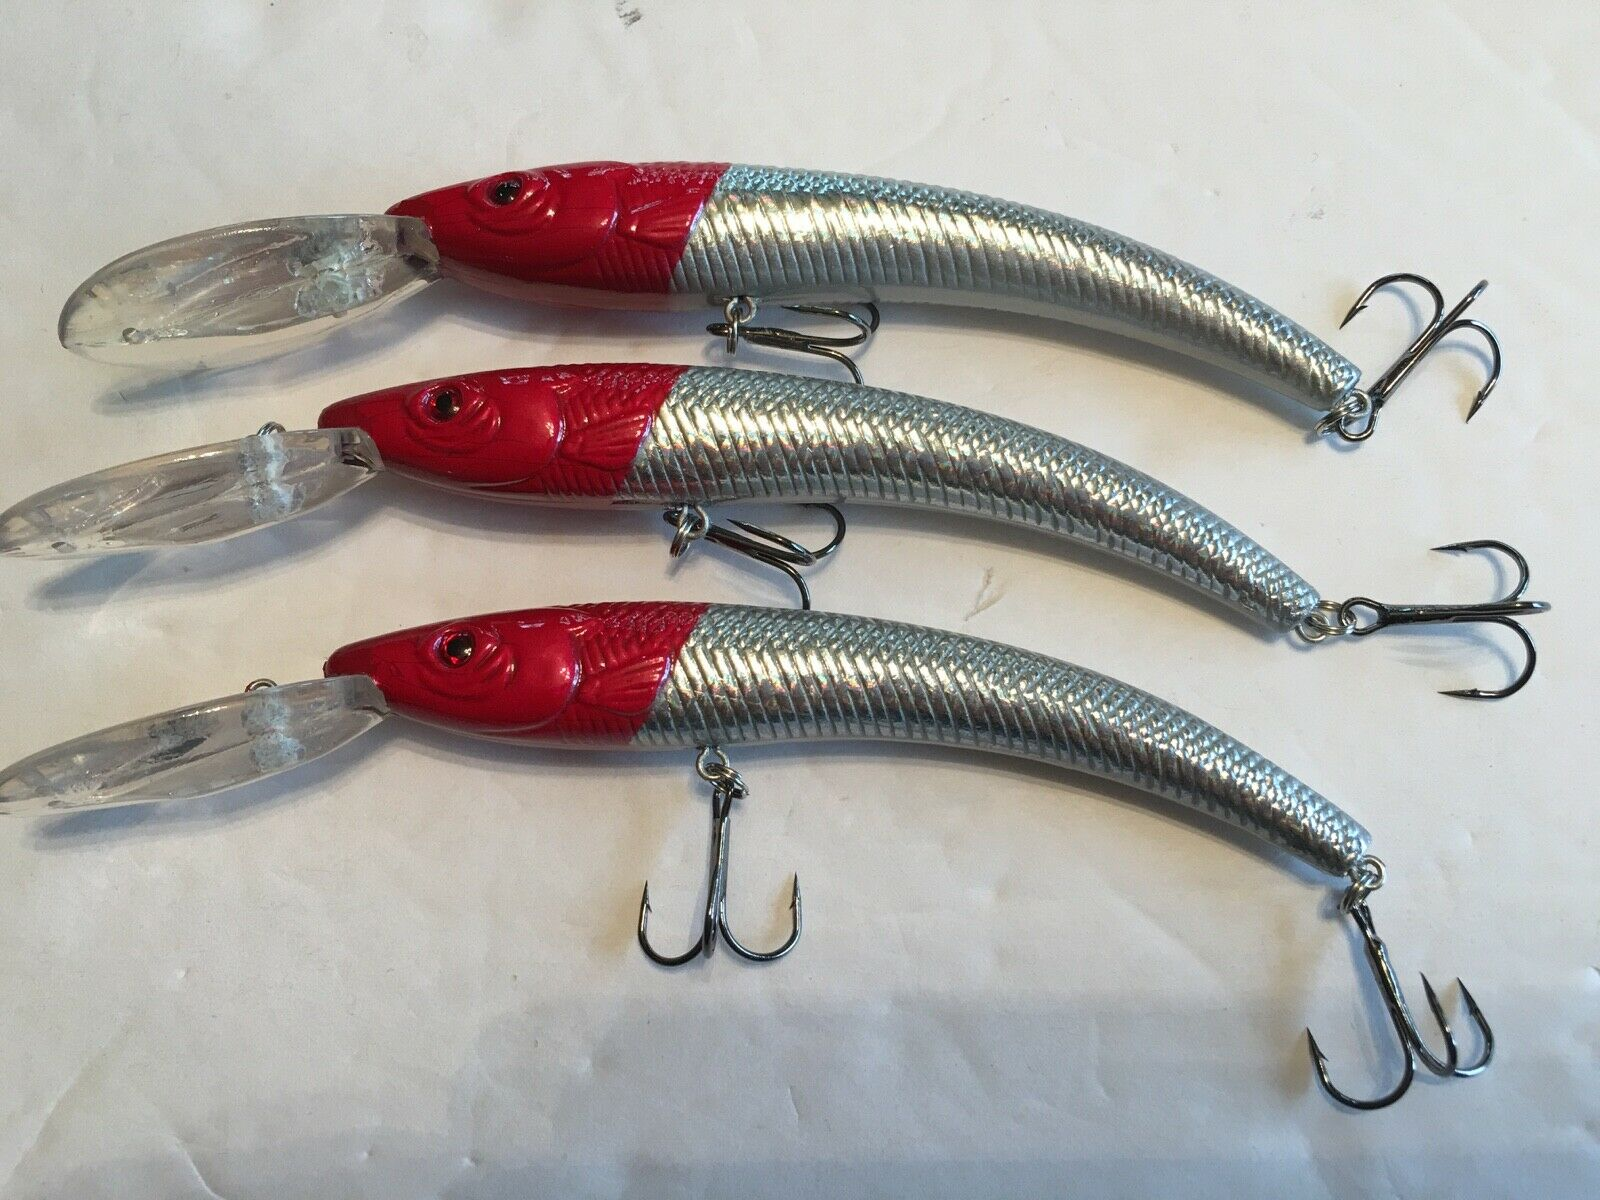 LOT OF 3 REEF RUNNER RIPSTICK STYLE fishing lure deep diver 800 SERIES NEW